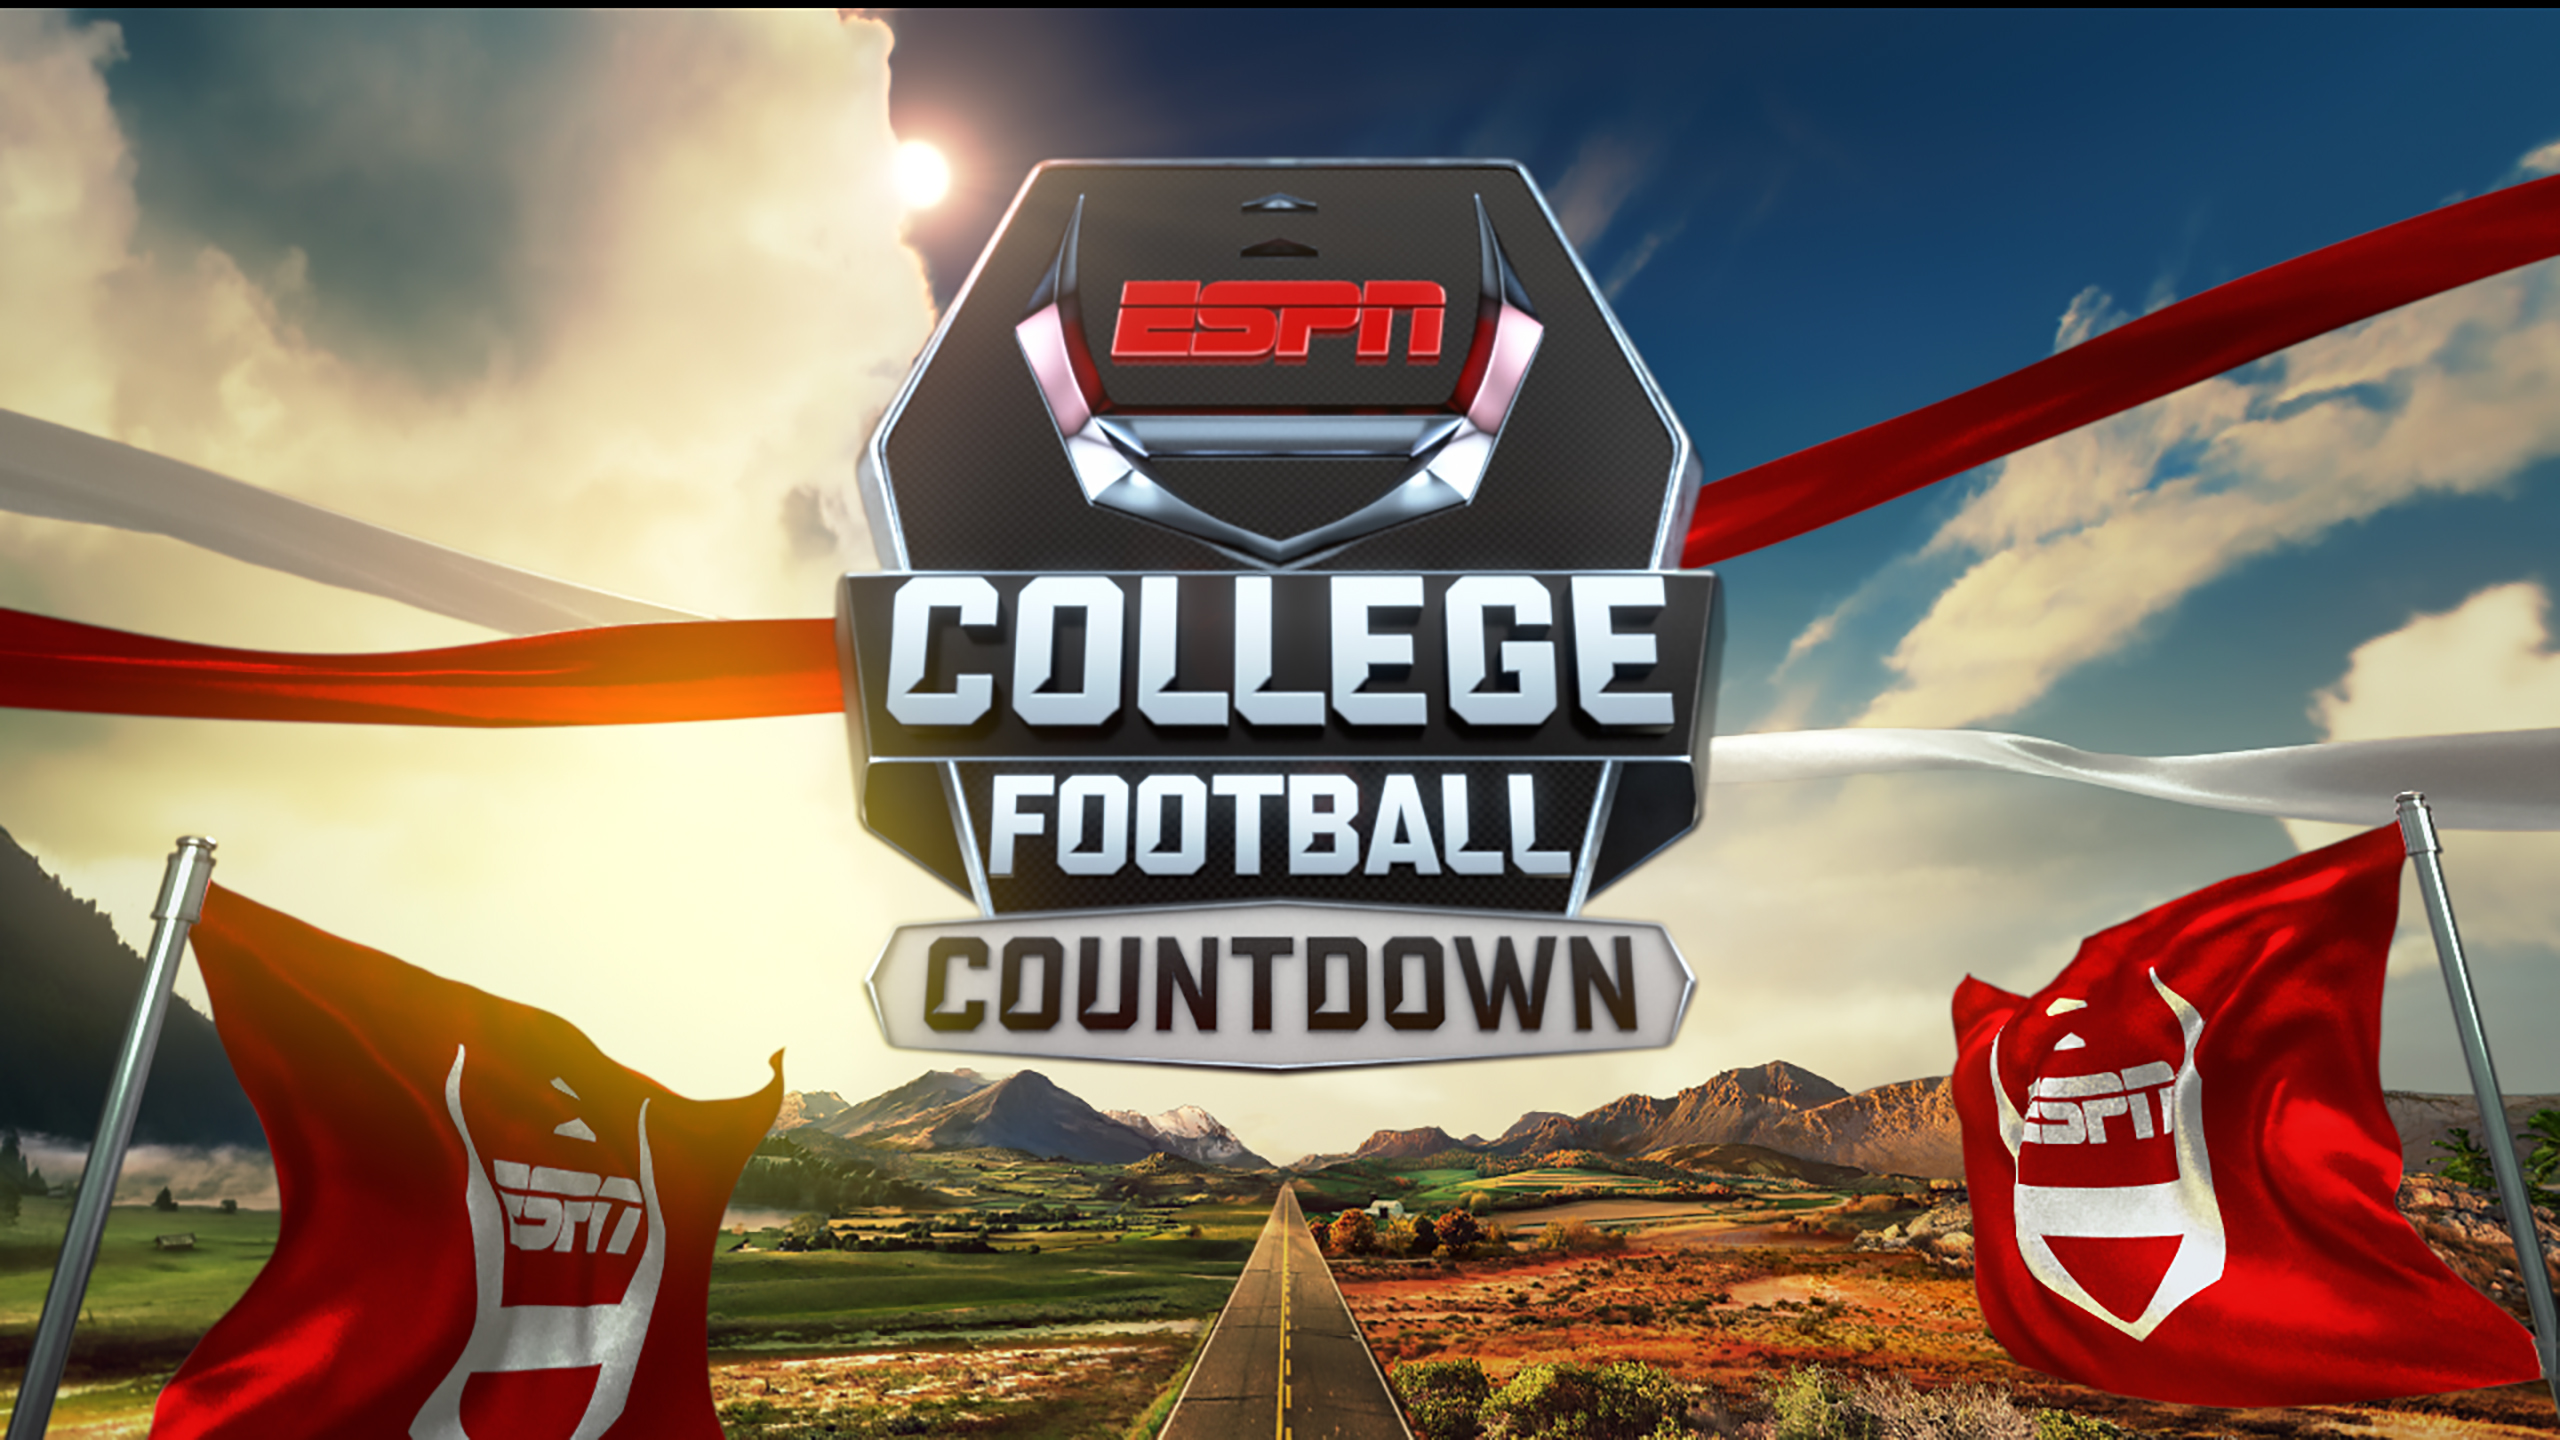 Thu, 9/20 - College Football Countdown Delivered by Papa John's